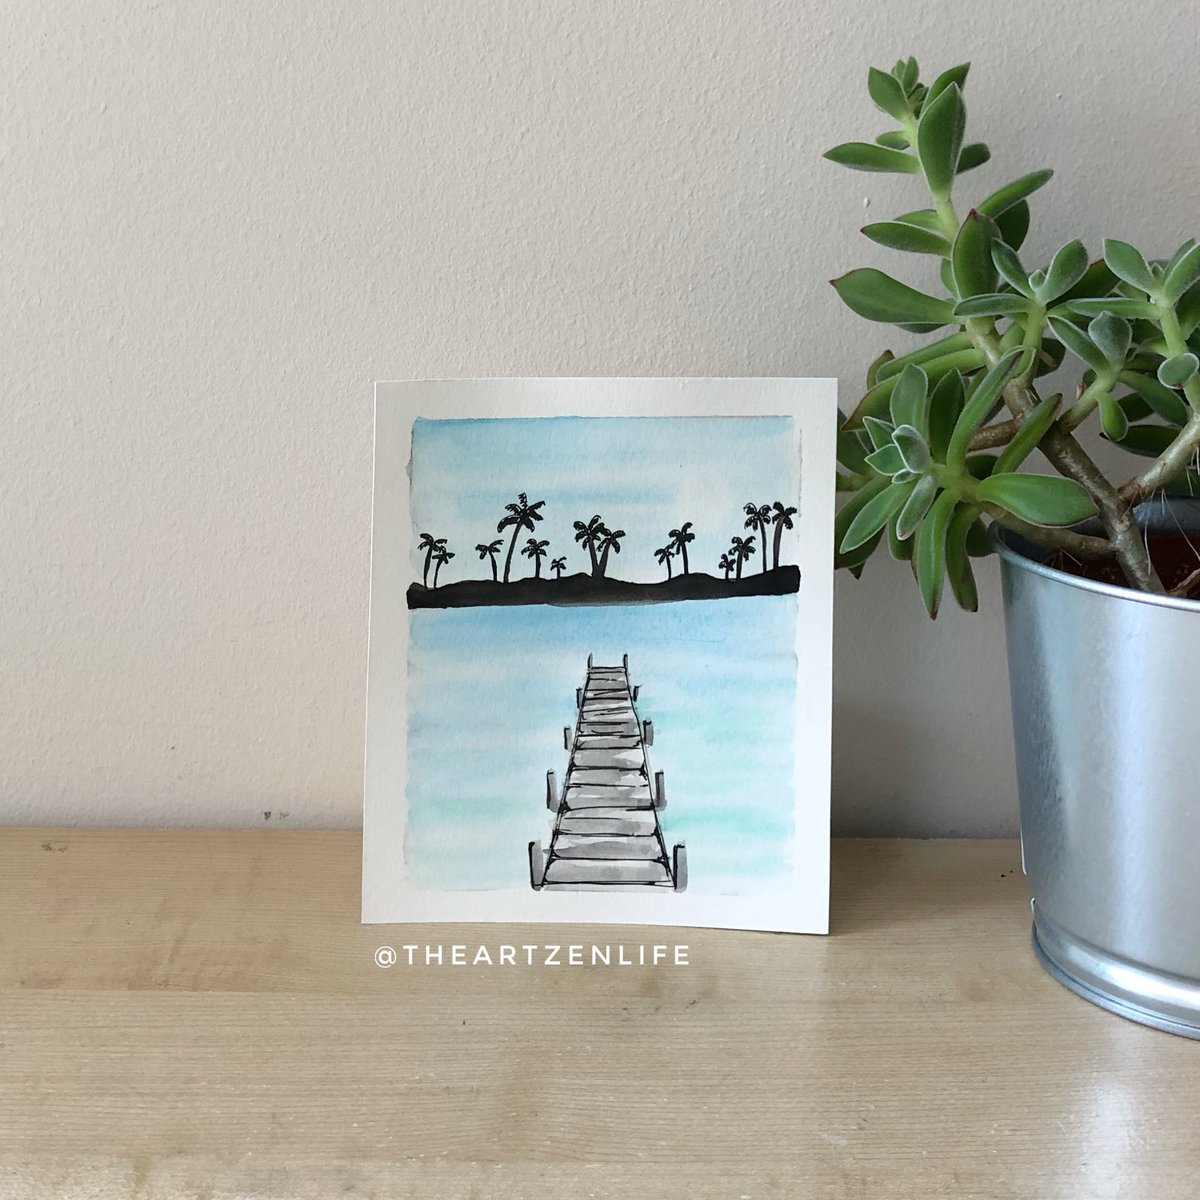 With summer here, thought I'd do a dockside painting! Full vid is in #linkinbio #dailyart #watercolor #painting #art #watercolorart #artwork #artist #landscapeart #artinspiration #paintingchallenge #creative #paintdaily #arttherapy #artistsupport #artshare #smallartaccountpic.twitter.com/Sv3bw4c7Di